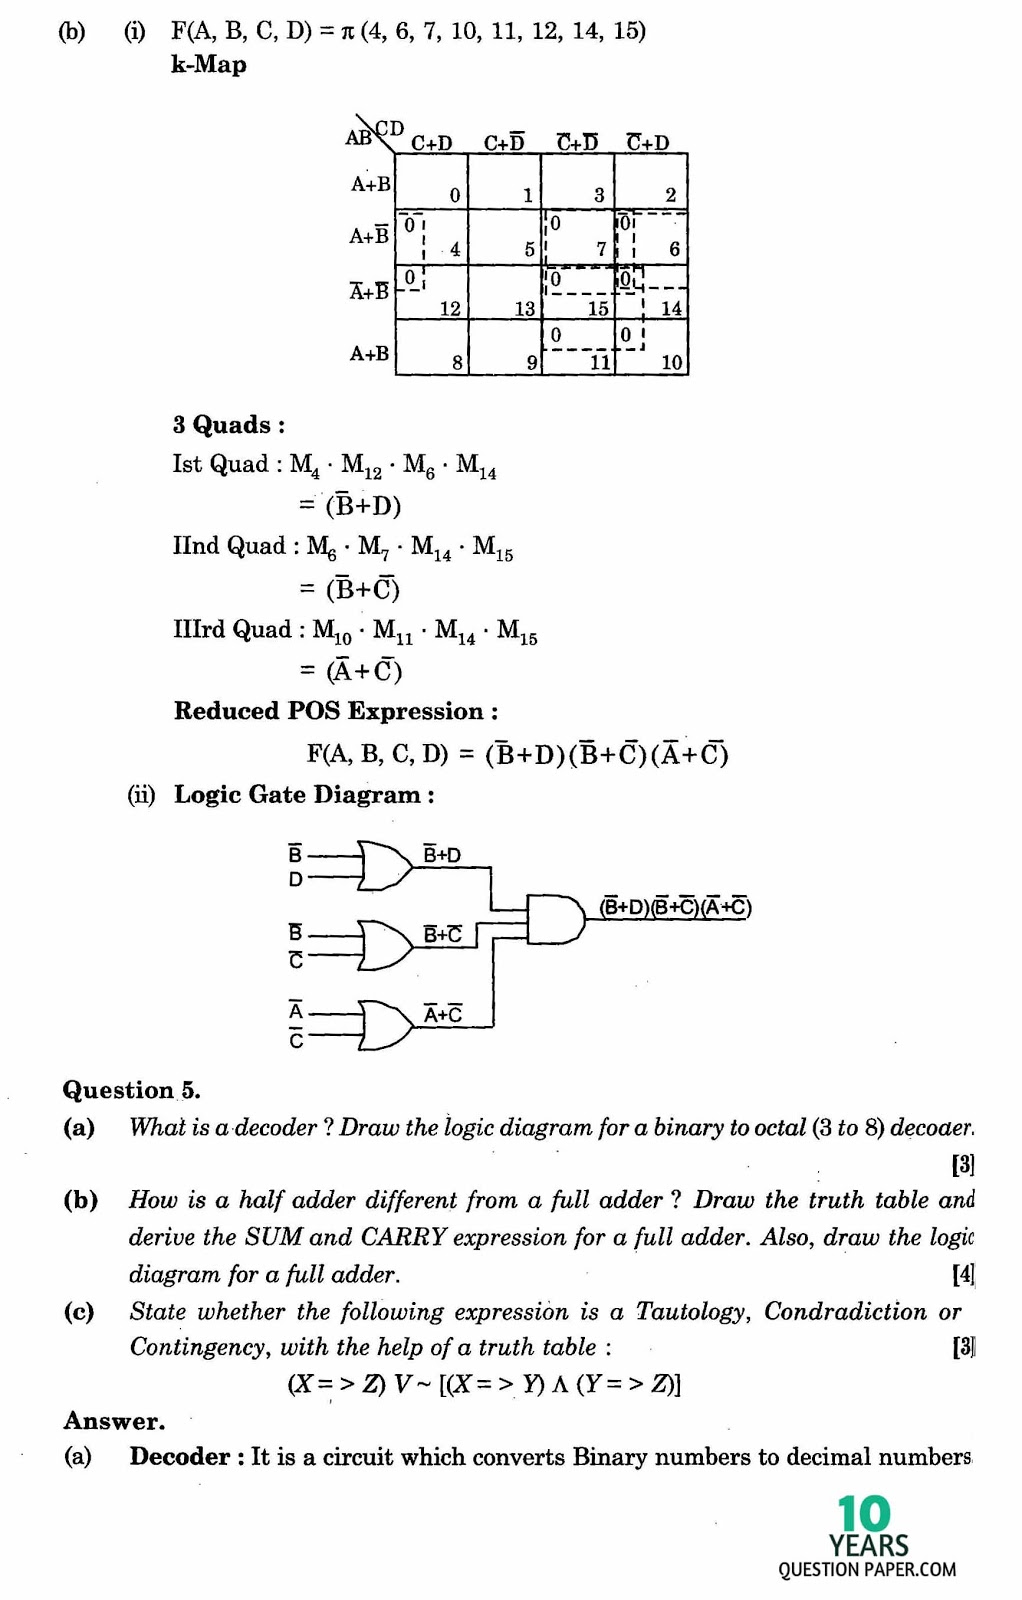 isc 2016 computer science solved paper 10 years question paper isc 2016 class 12th computer science paper solved